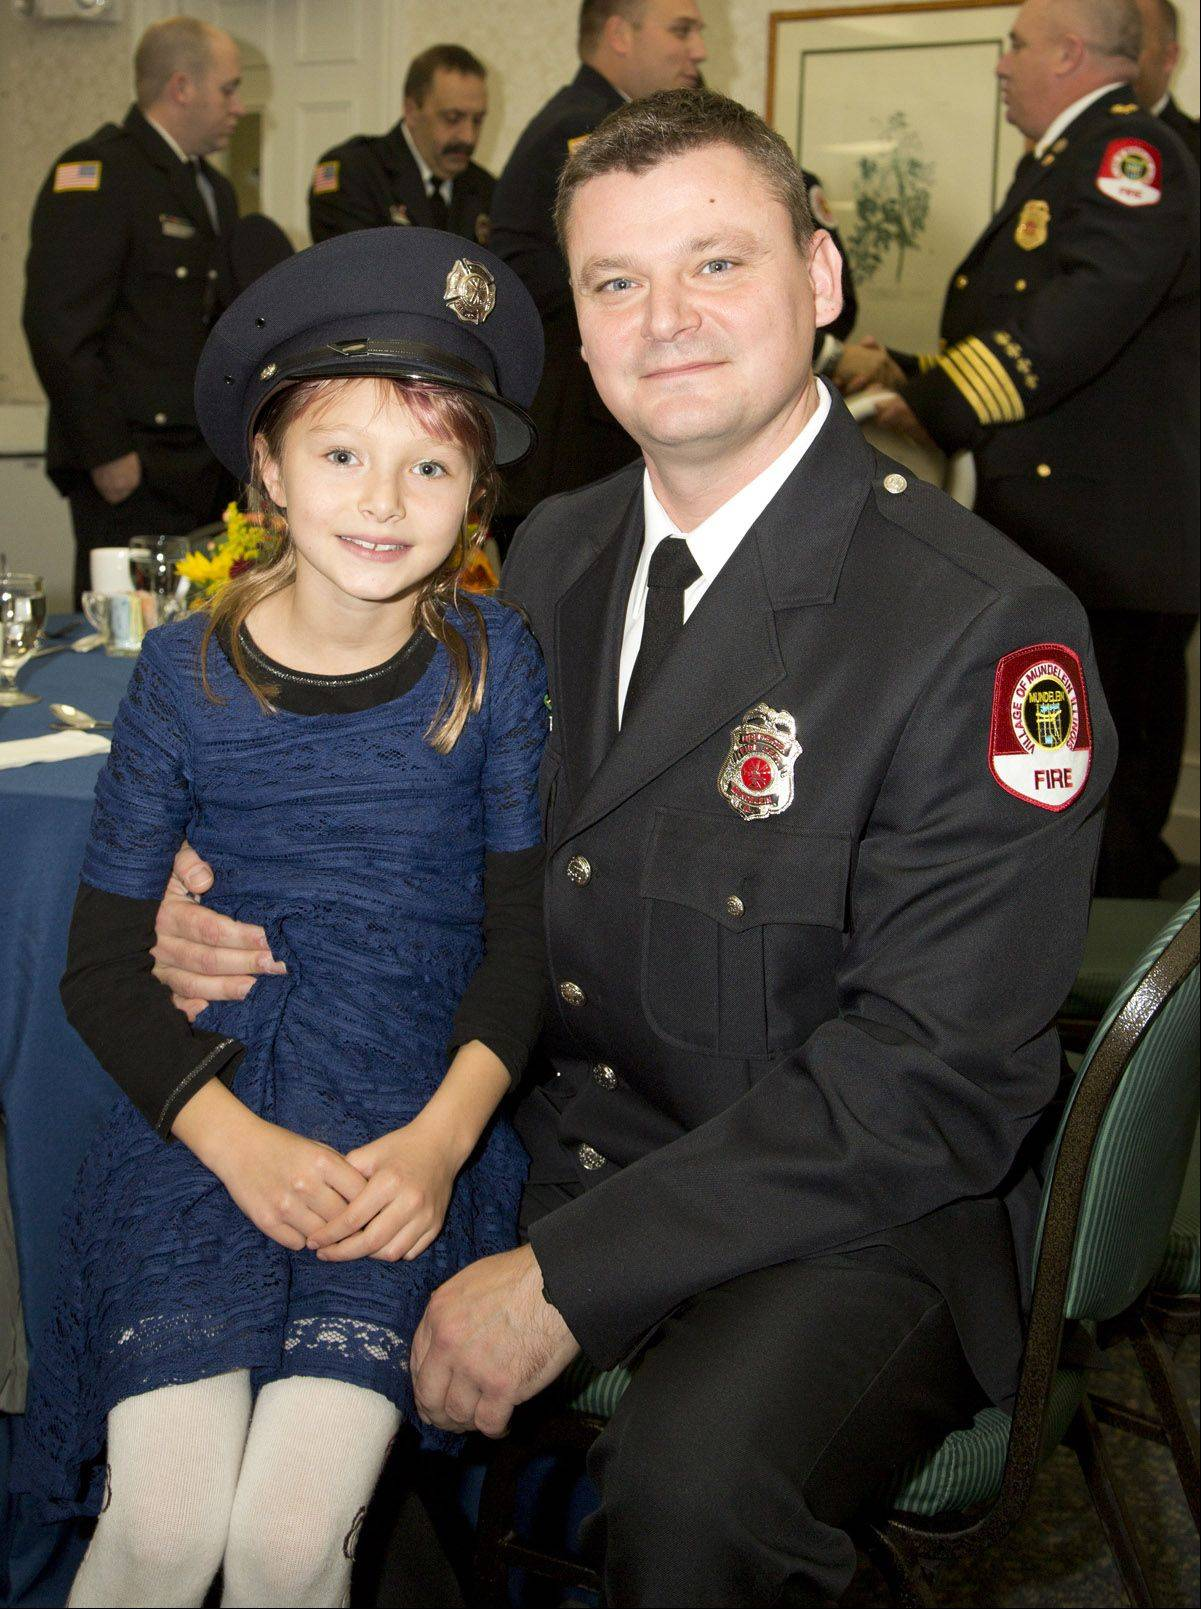 Marek Kokosinski, firefighter/paramedic with the Mundelein Fire Department, with his daughter Anna at the A Cut Above Award Ceremony for first responders at Northwestern Lake Forest Hospital.